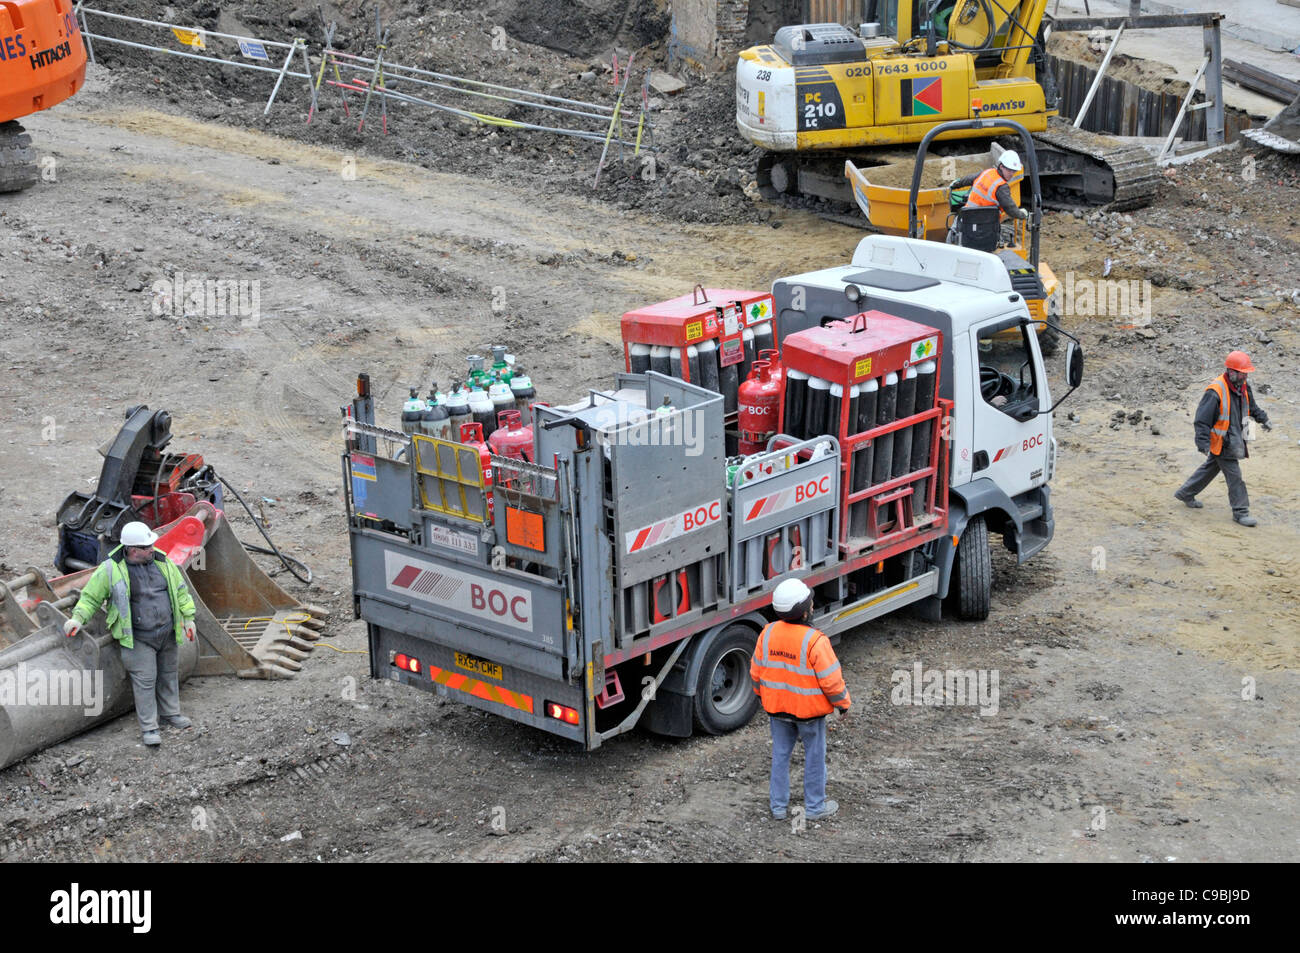 View From Above Looking Down At British Oxygen Company Boc Gas Stock Photo Alamy